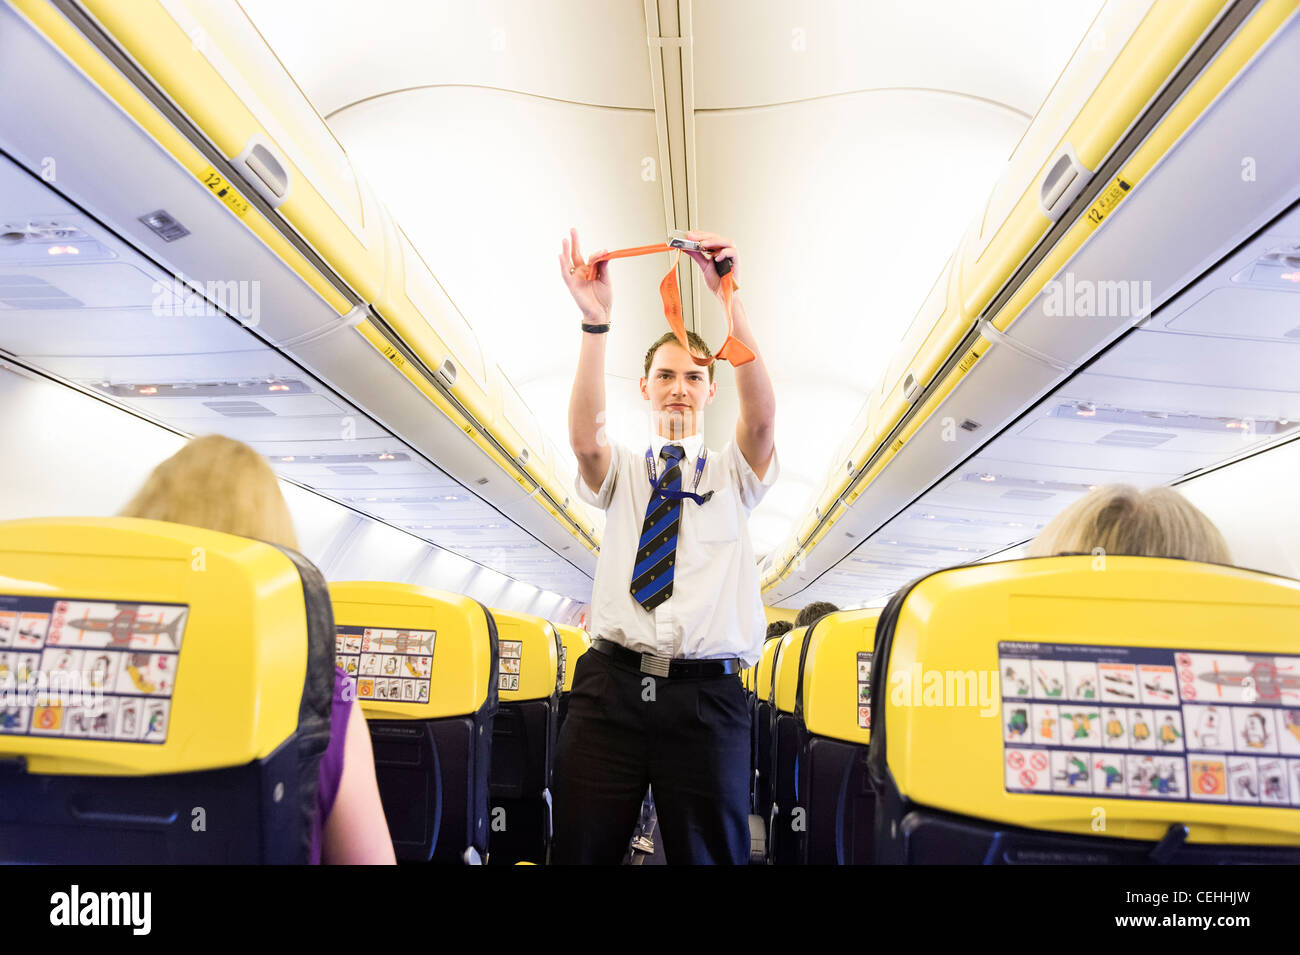 Preflight safety demonstration on board Ryanair plane, England, UK - Stock Image